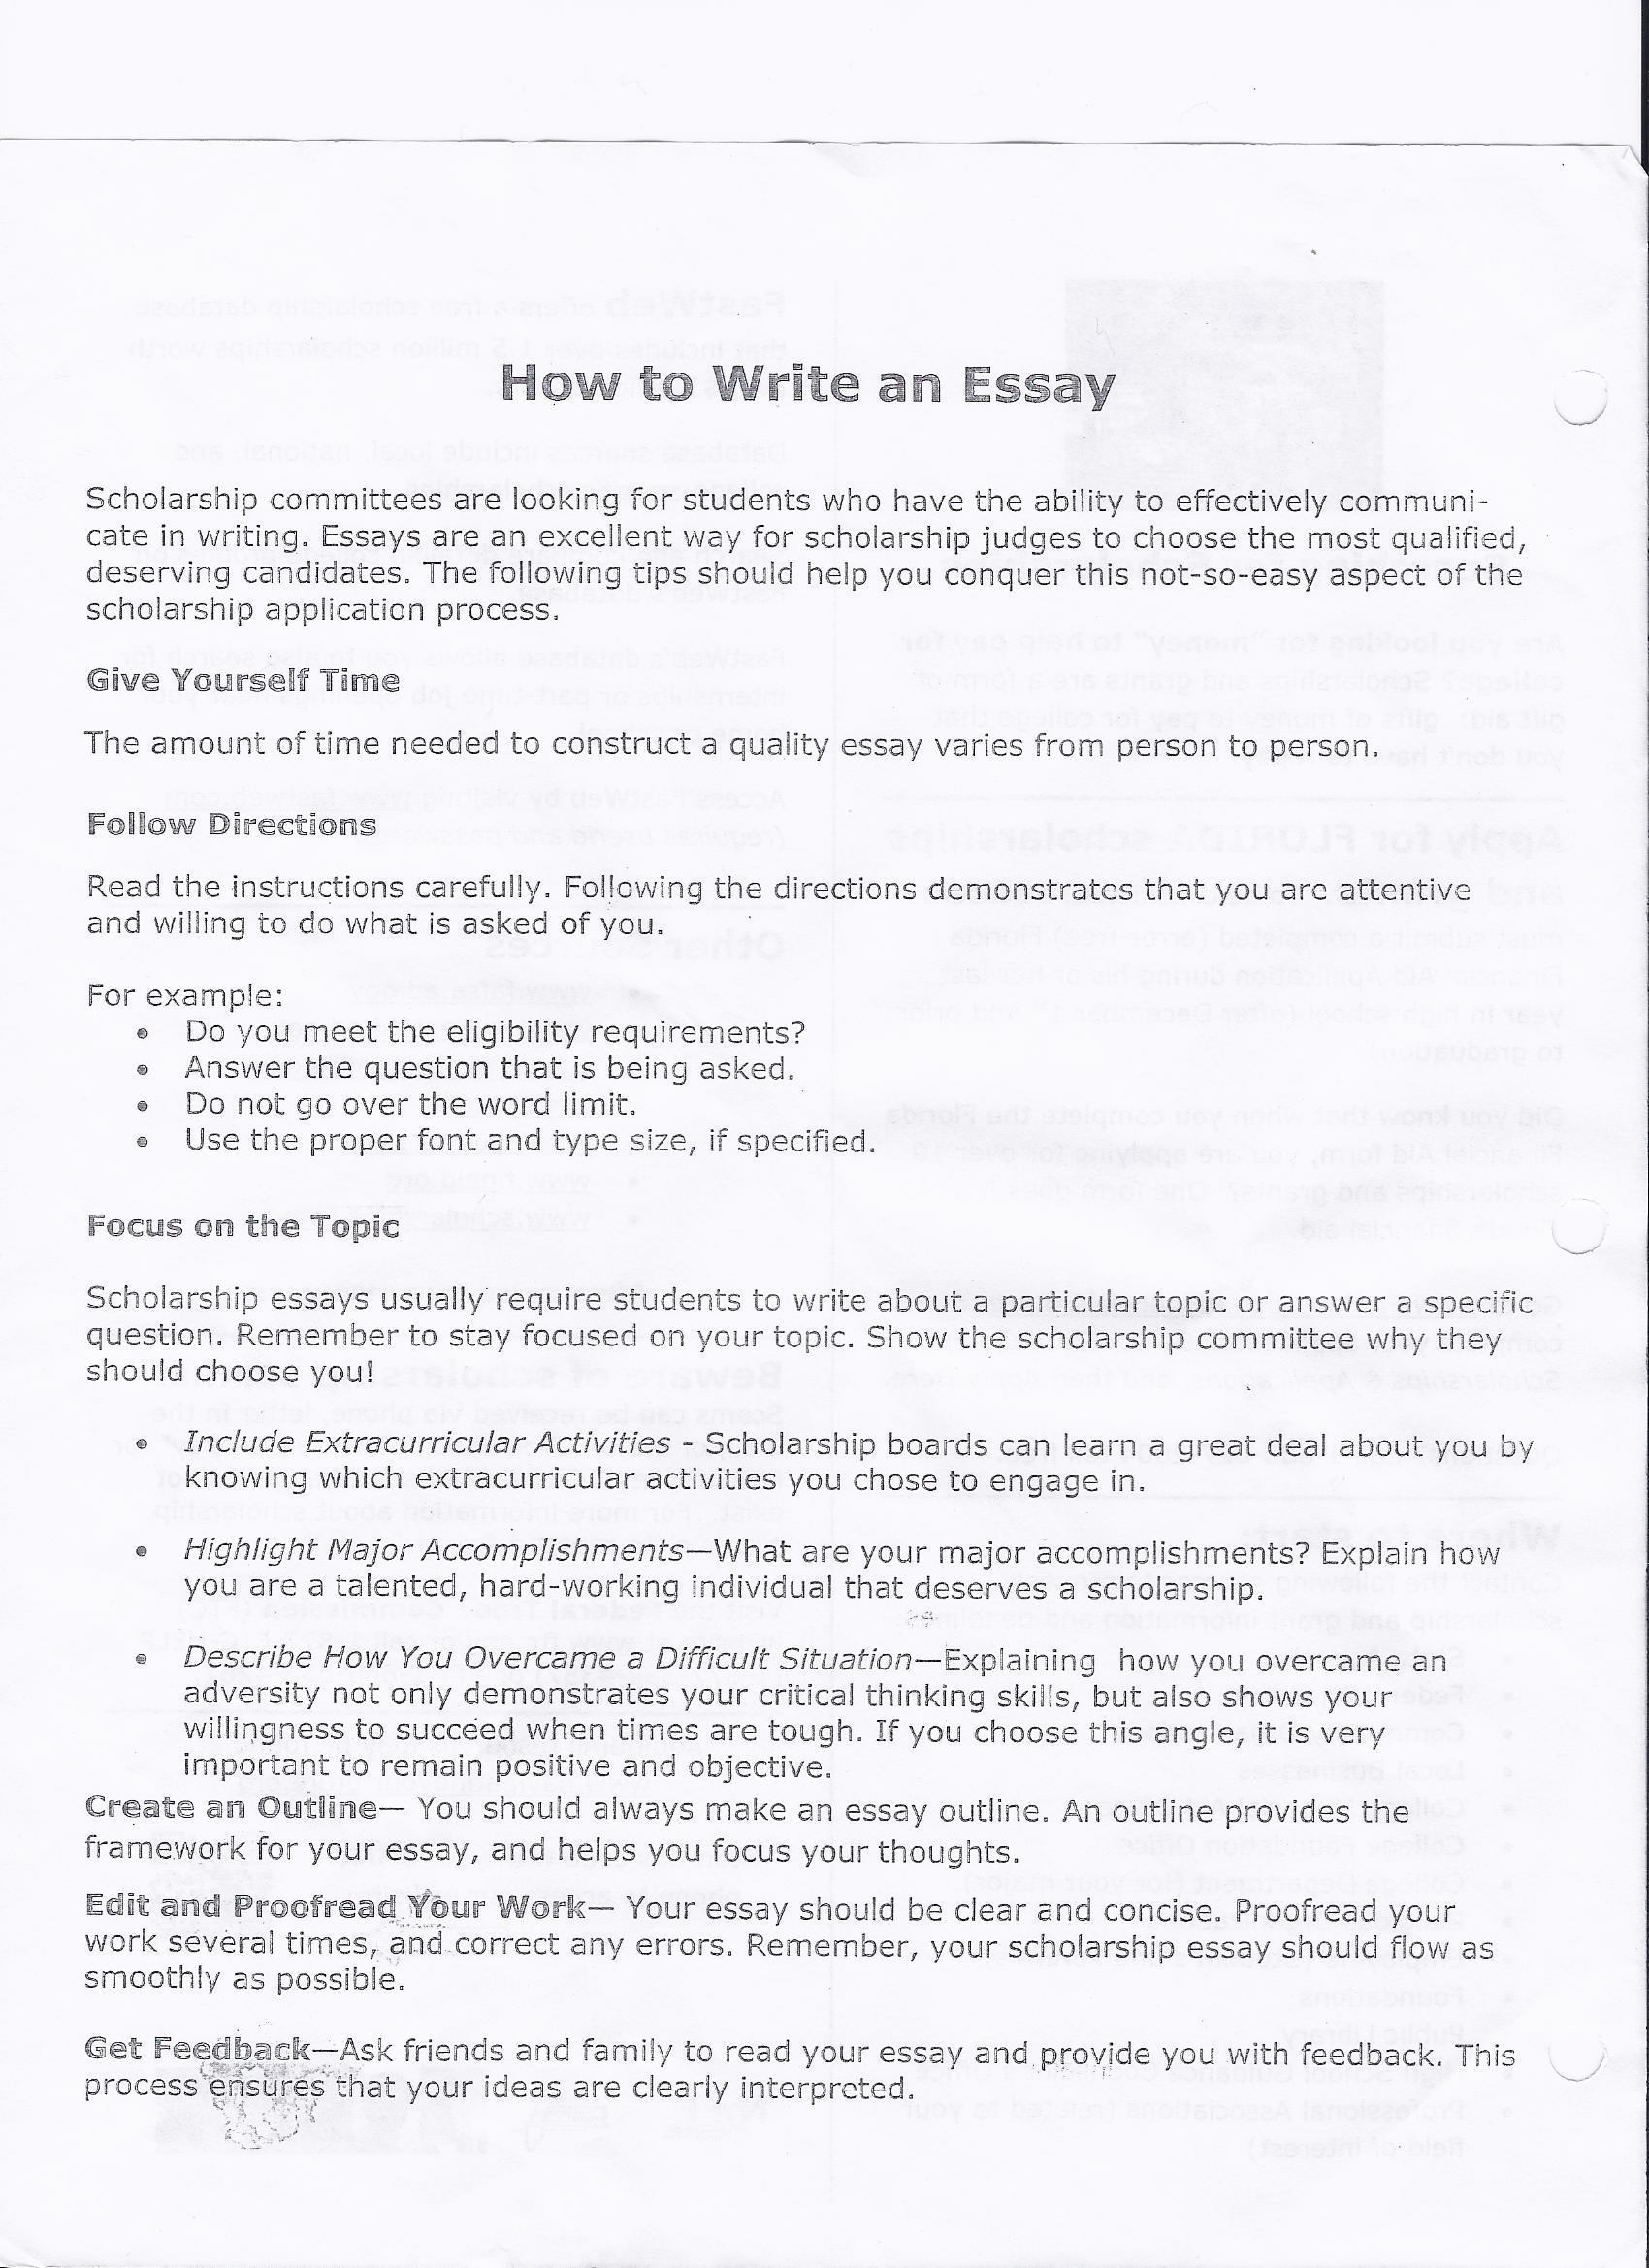 Writing a college essay